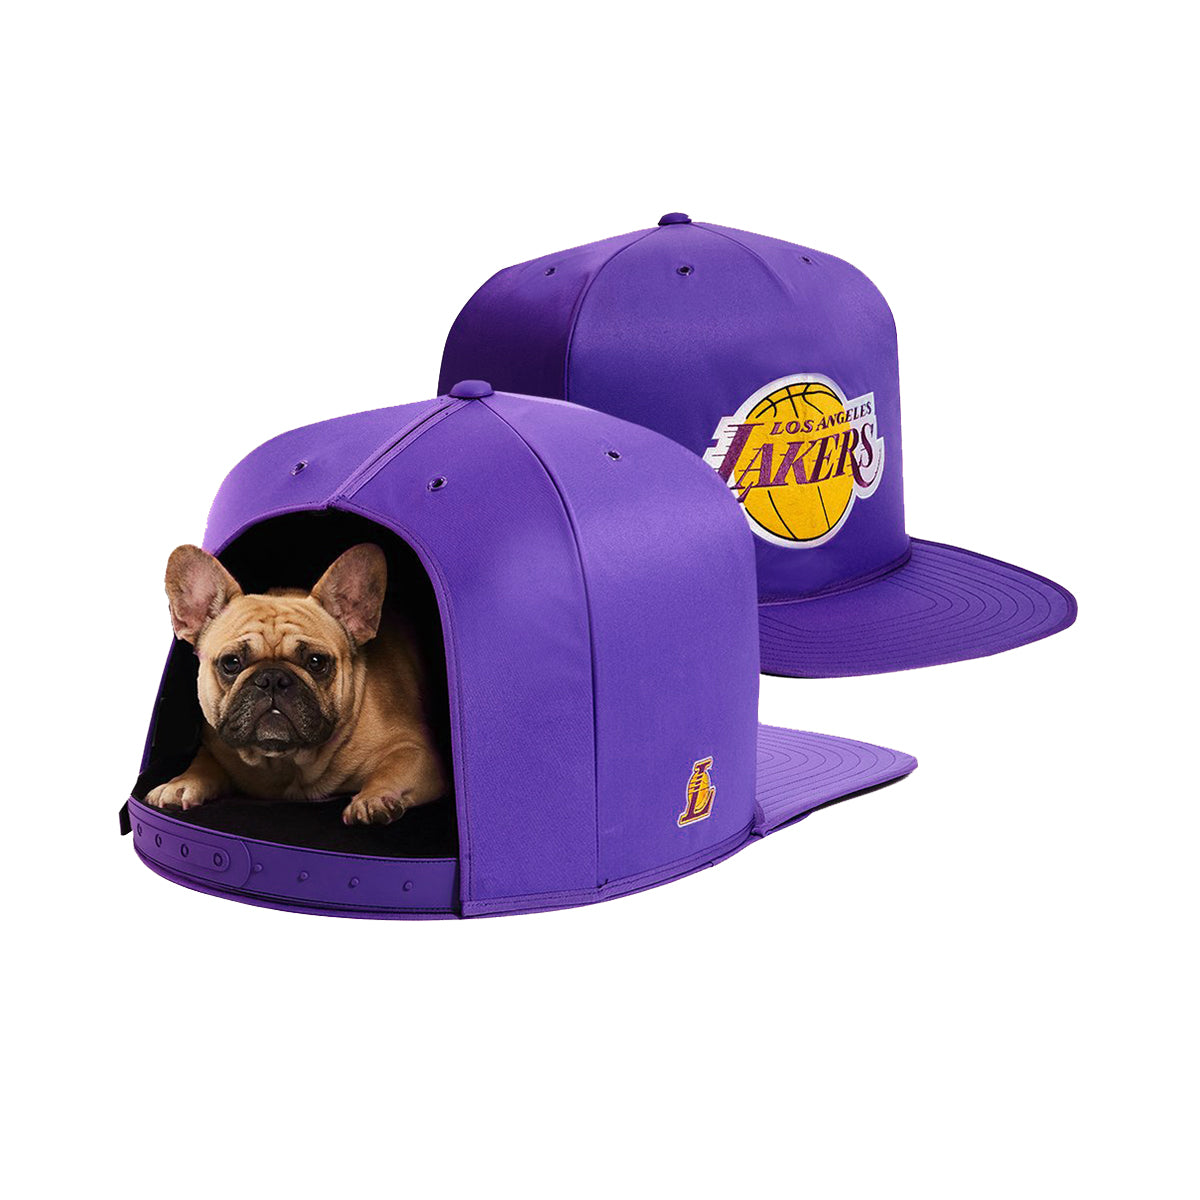 LA Lakers Nap Cap Dog Bed